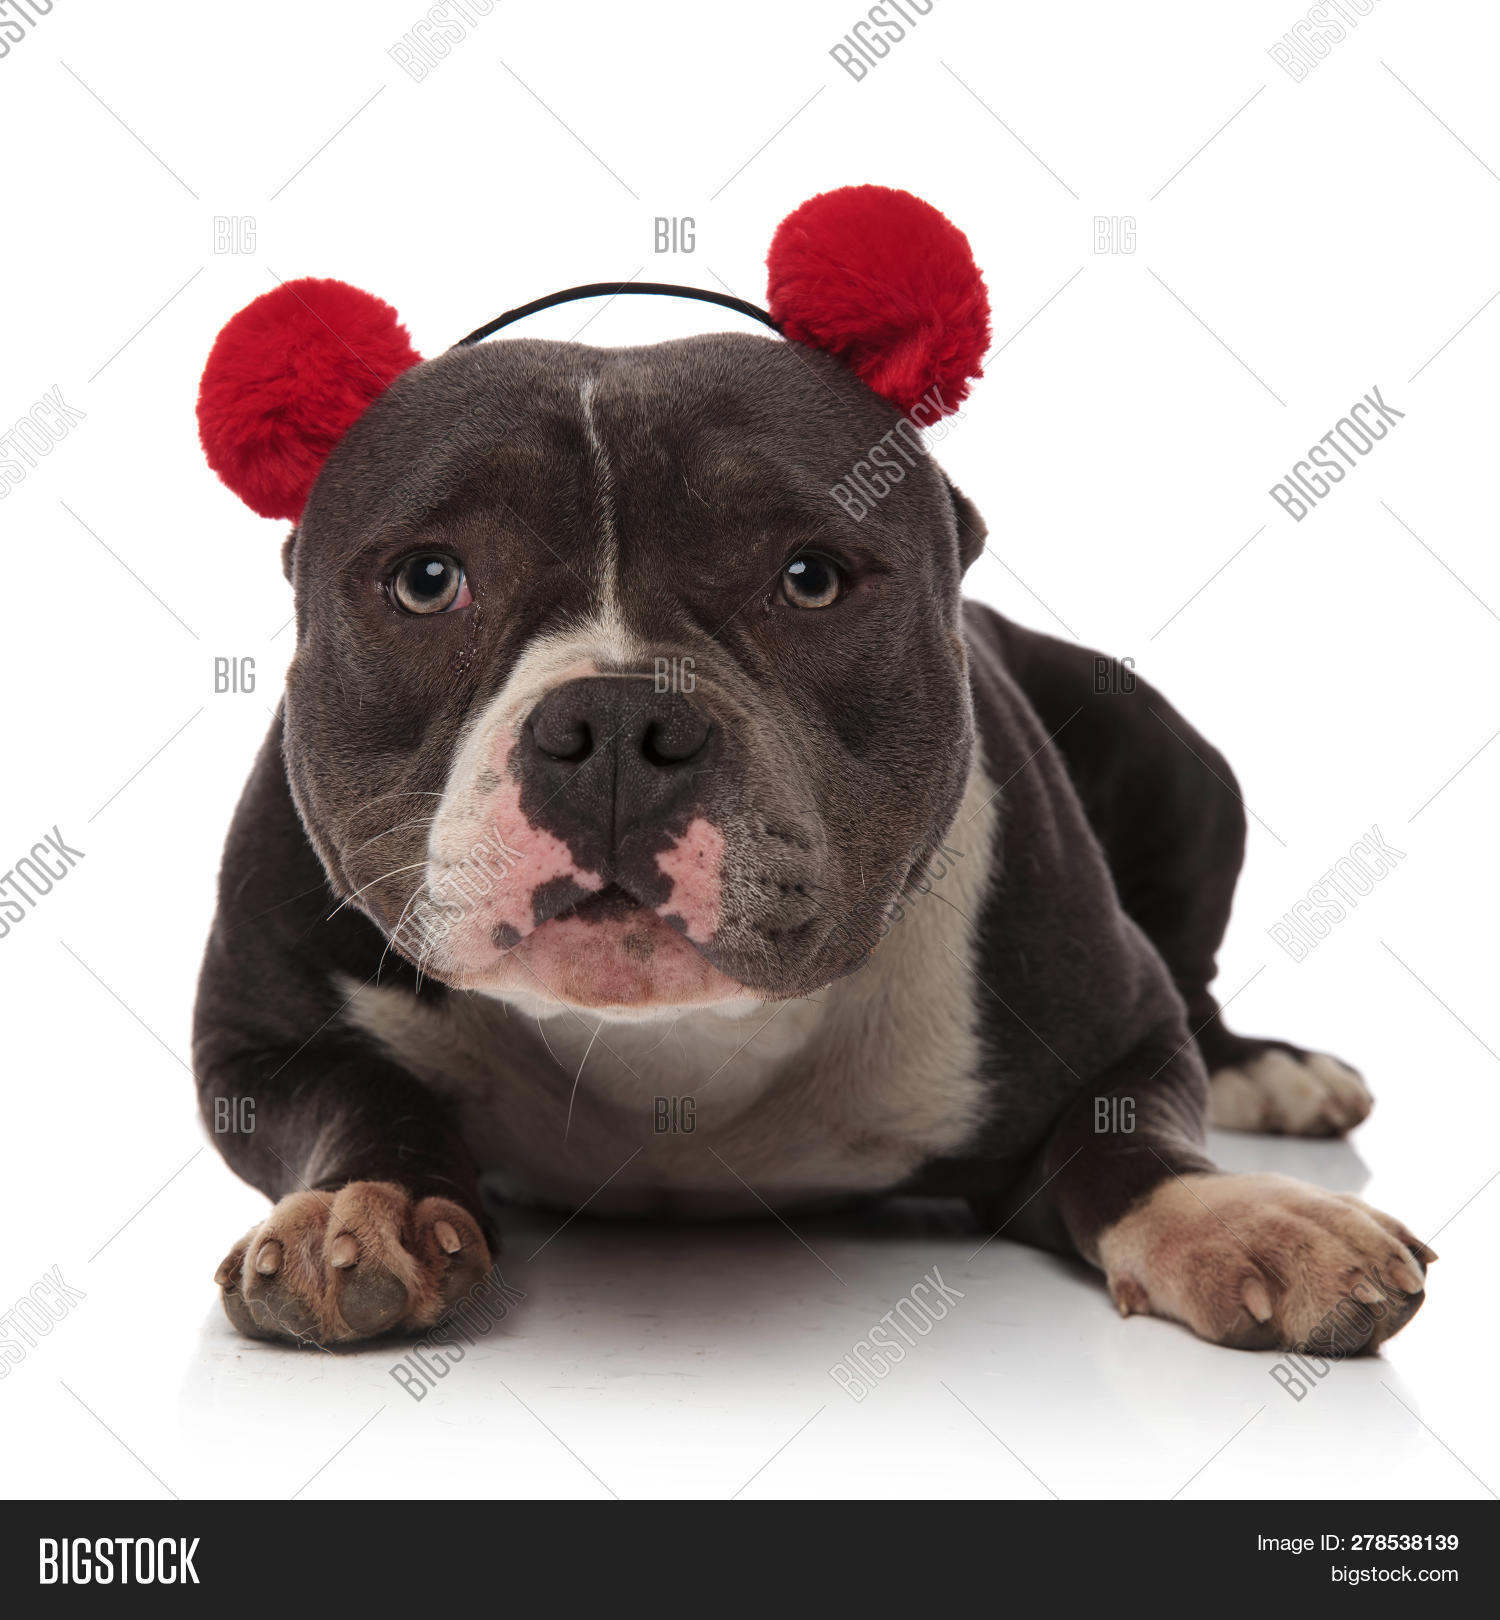 adorable american bully wearing fluffy red earmuffs lying on white background